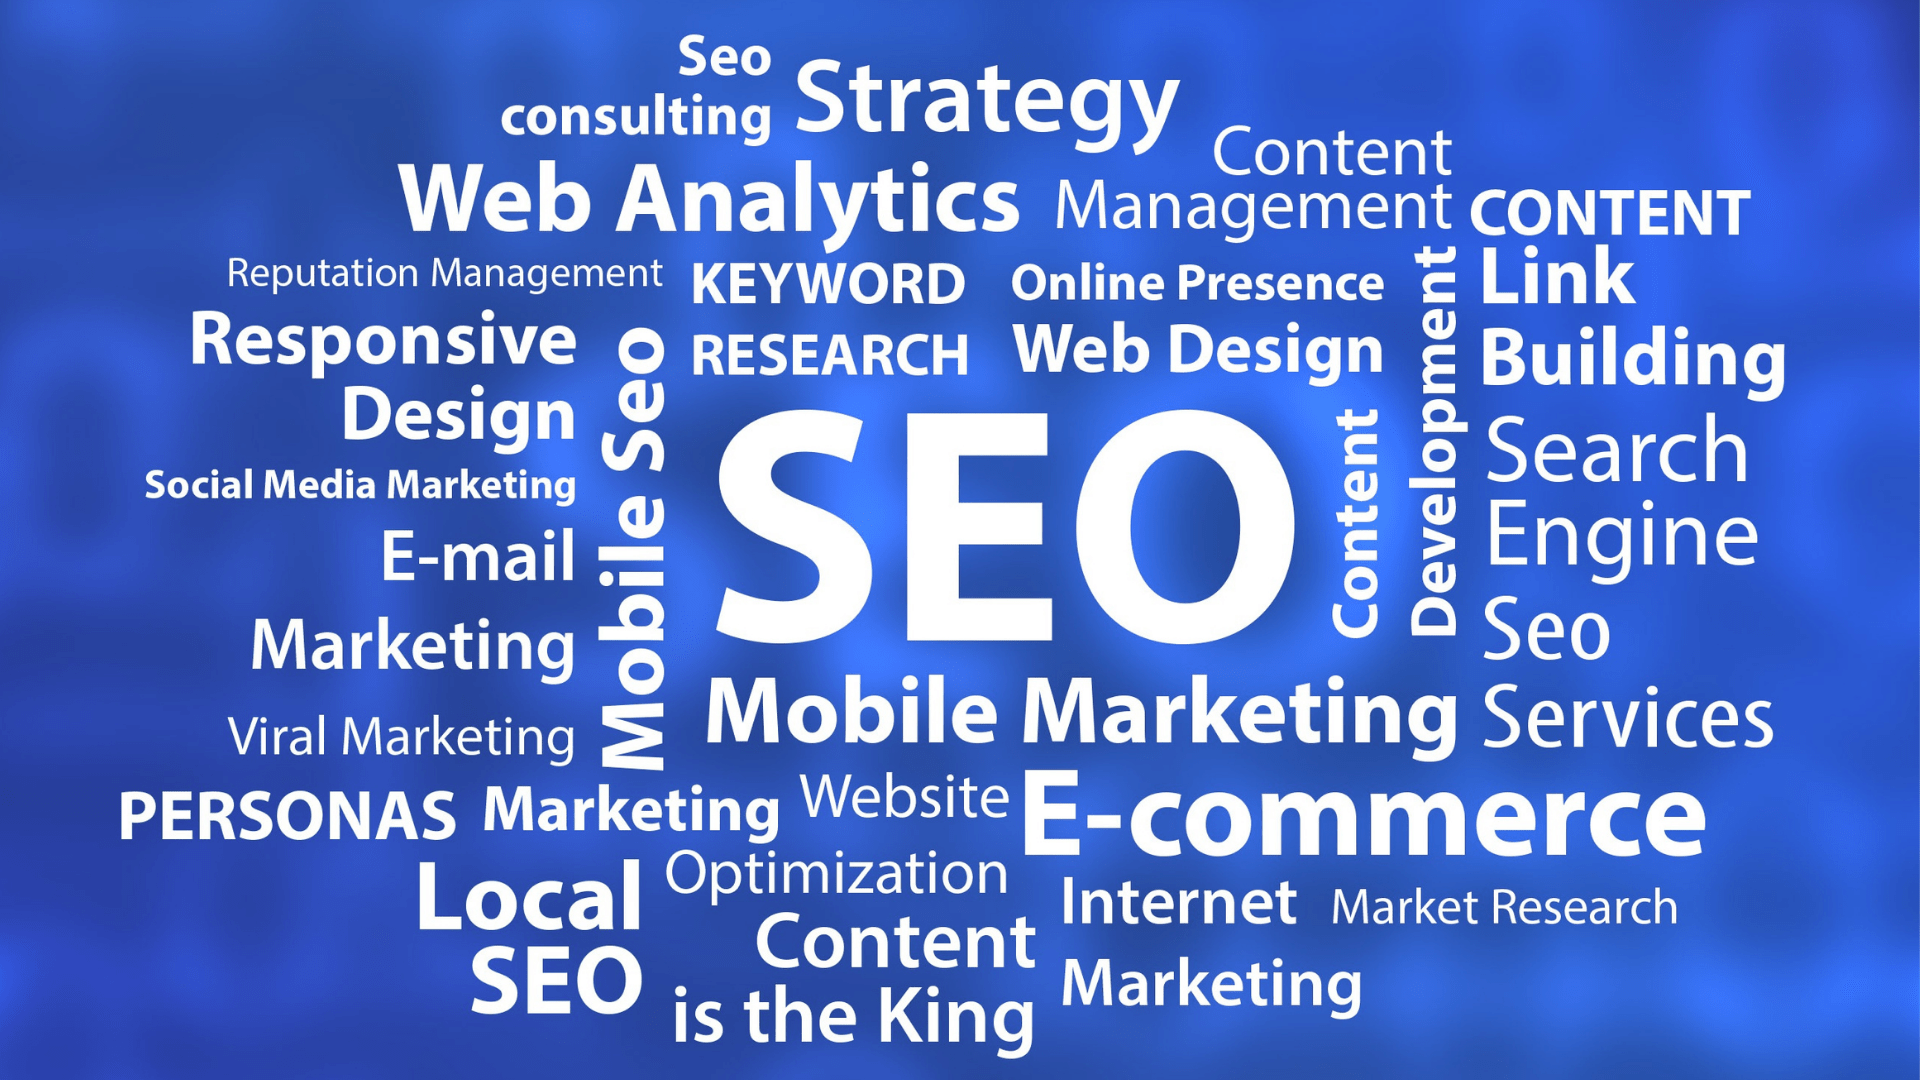 What are the top wordpress plugins to improve SEO?